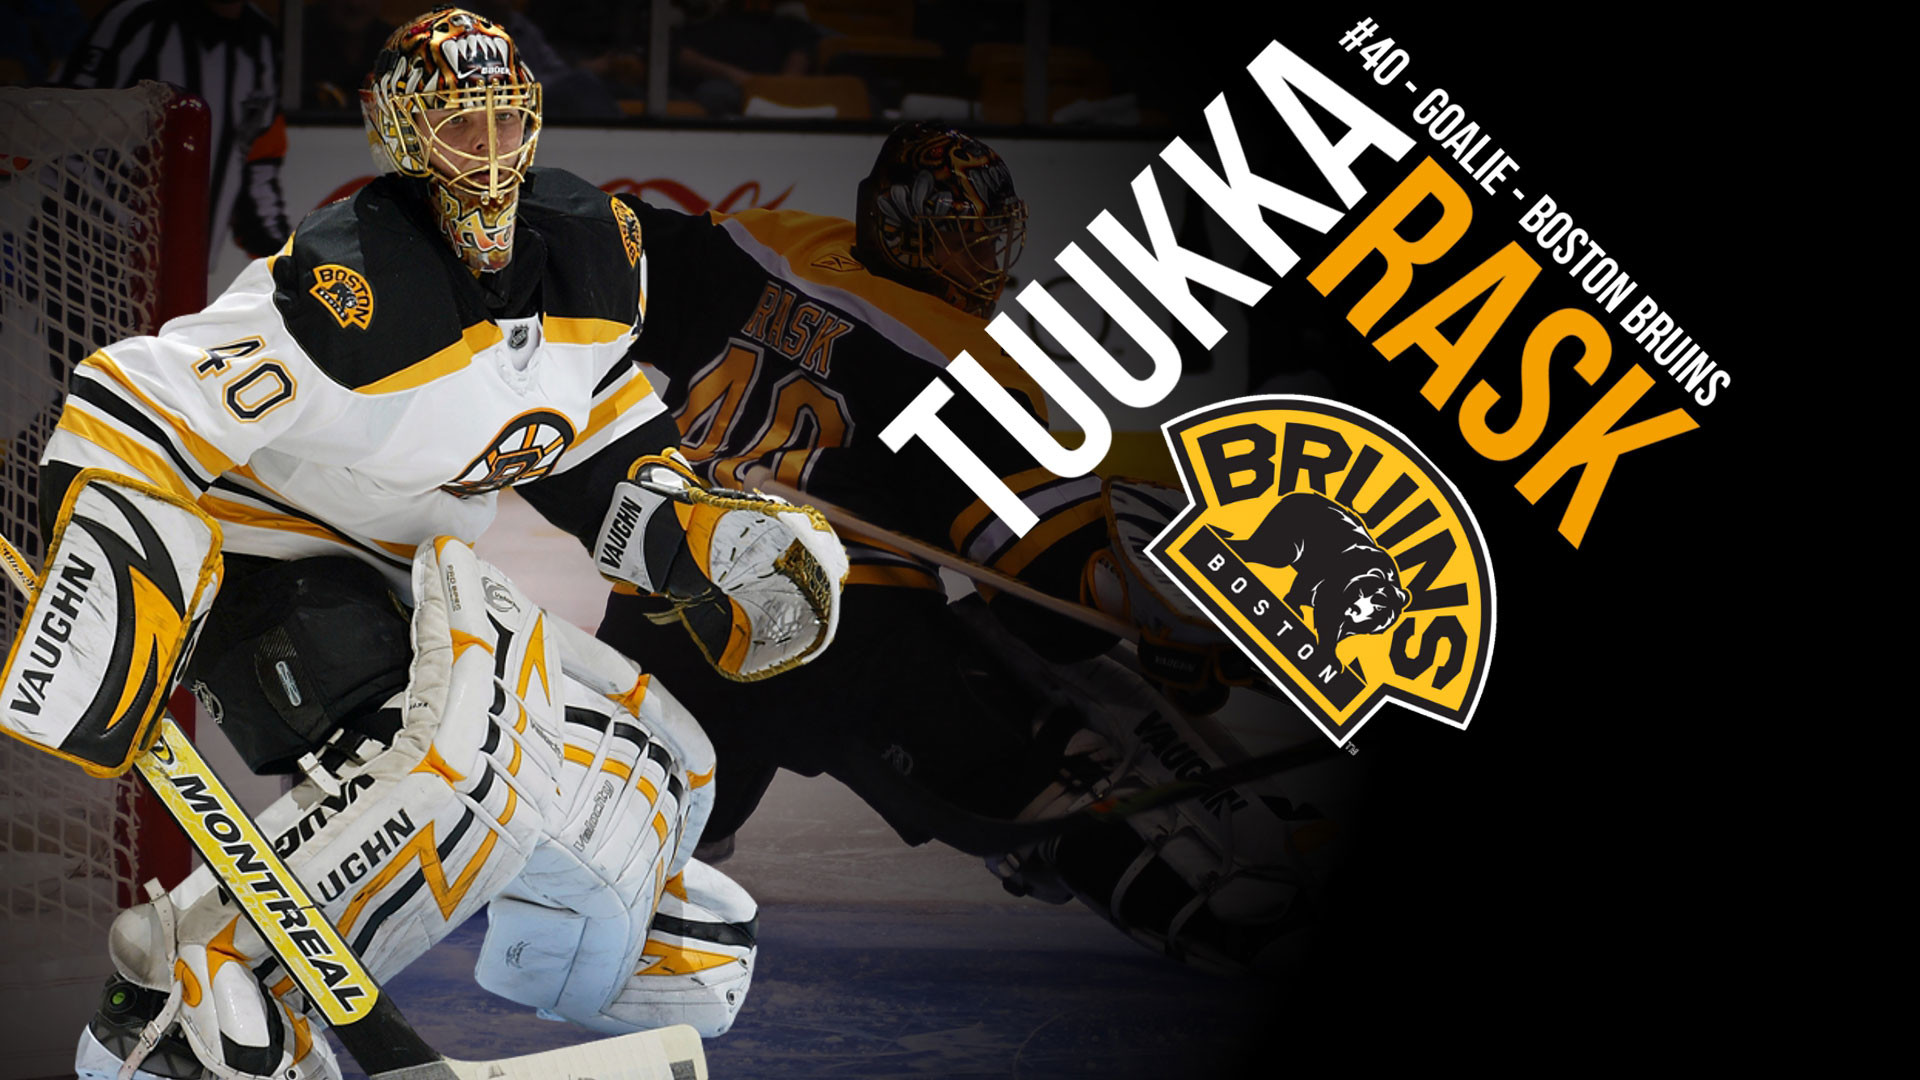 1920x1200 Boston Bruins Images Stanley Cup Champions Tim Thomas HD Wallpaper And Background Photos